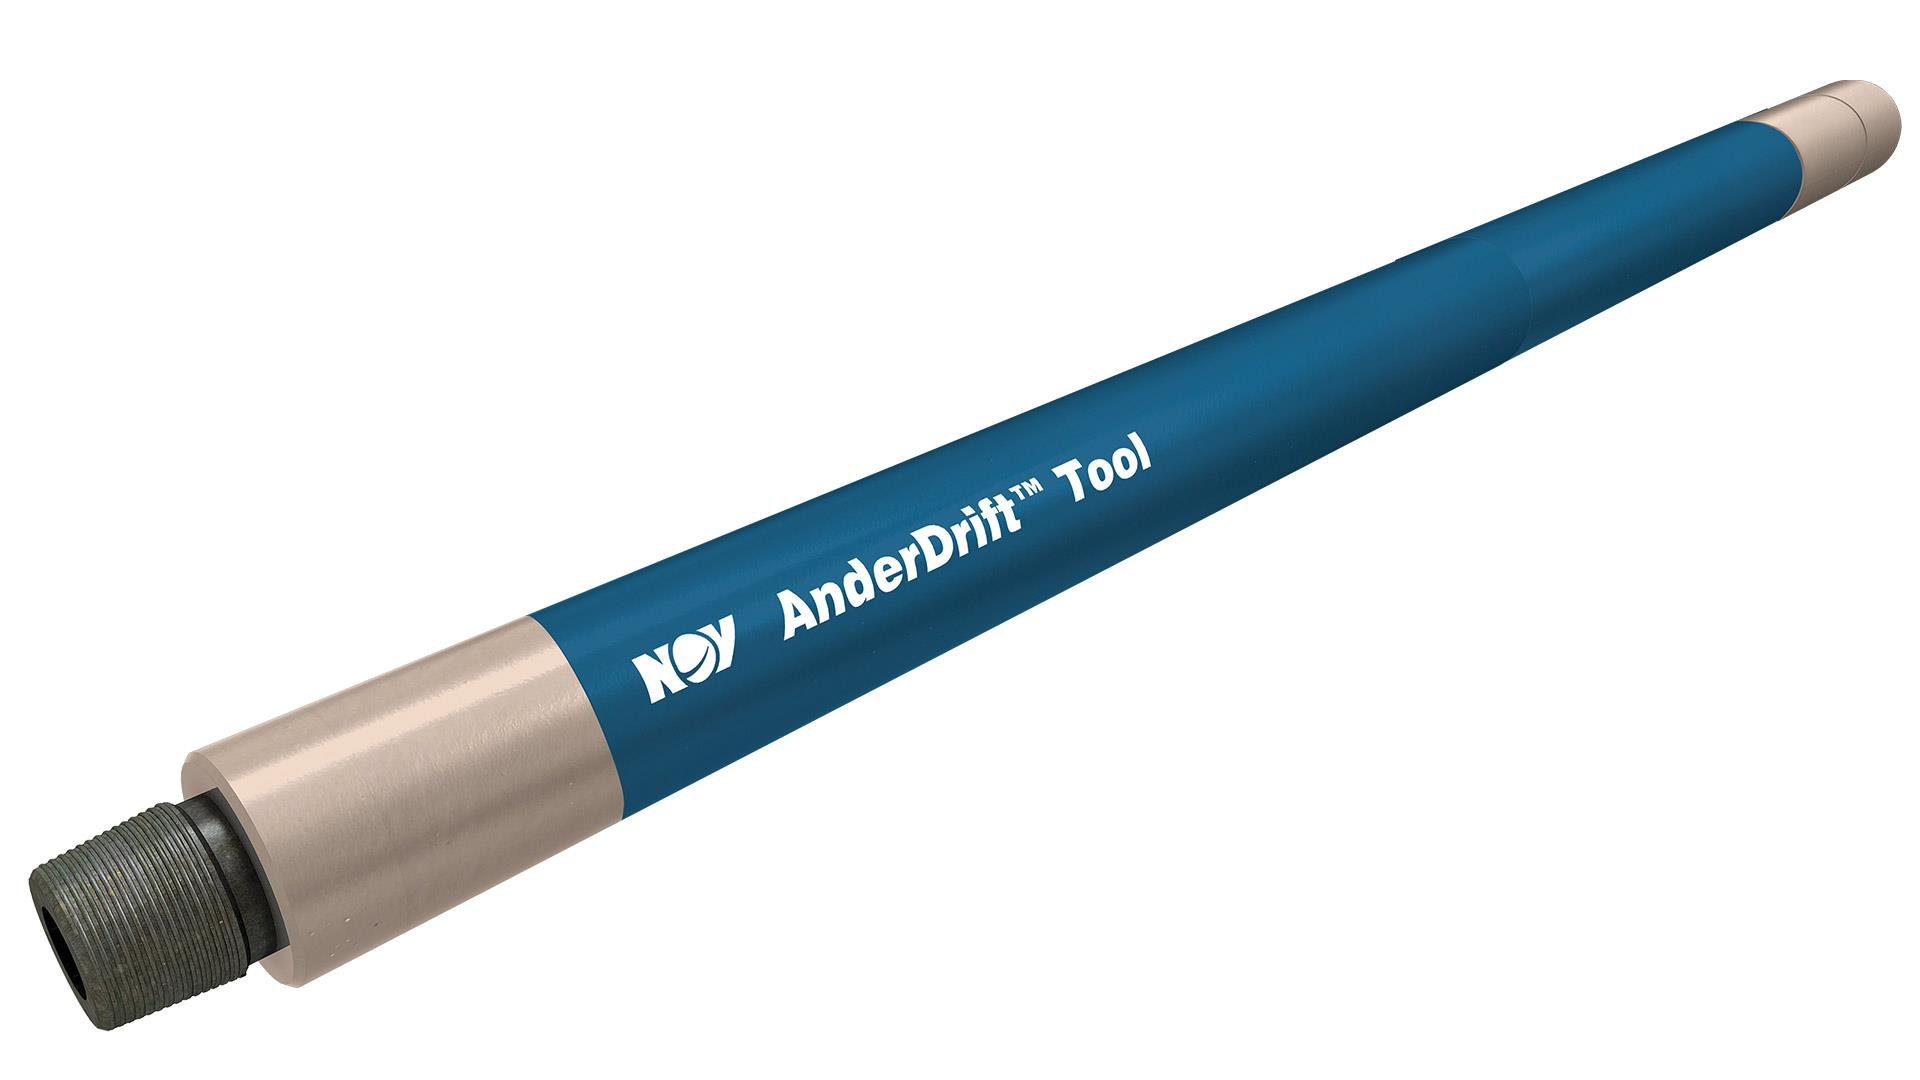 A render of an AnderDrift Mechanical Survey Tool